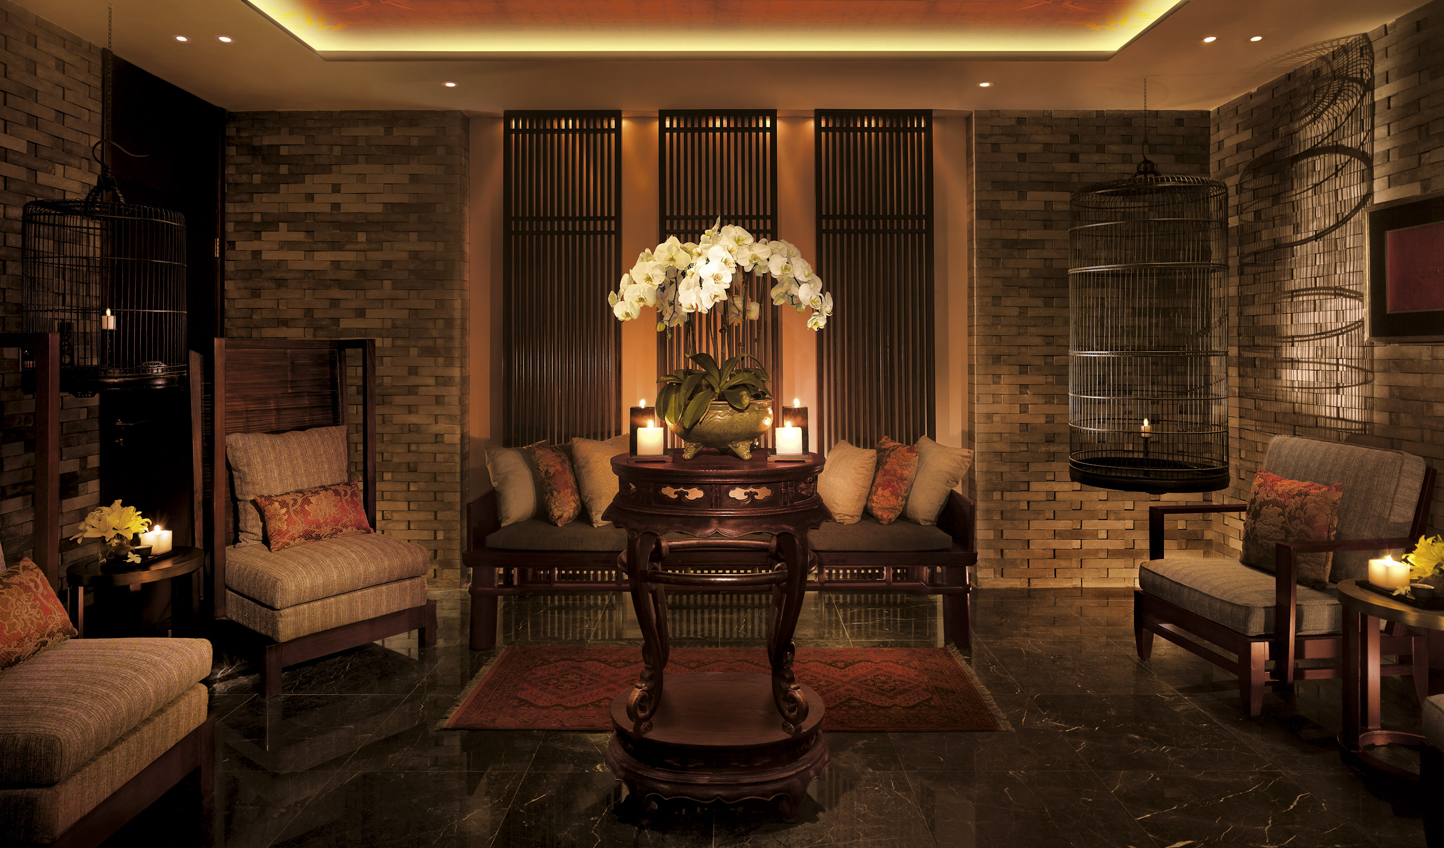 Get a sense of the Orient at the Spa